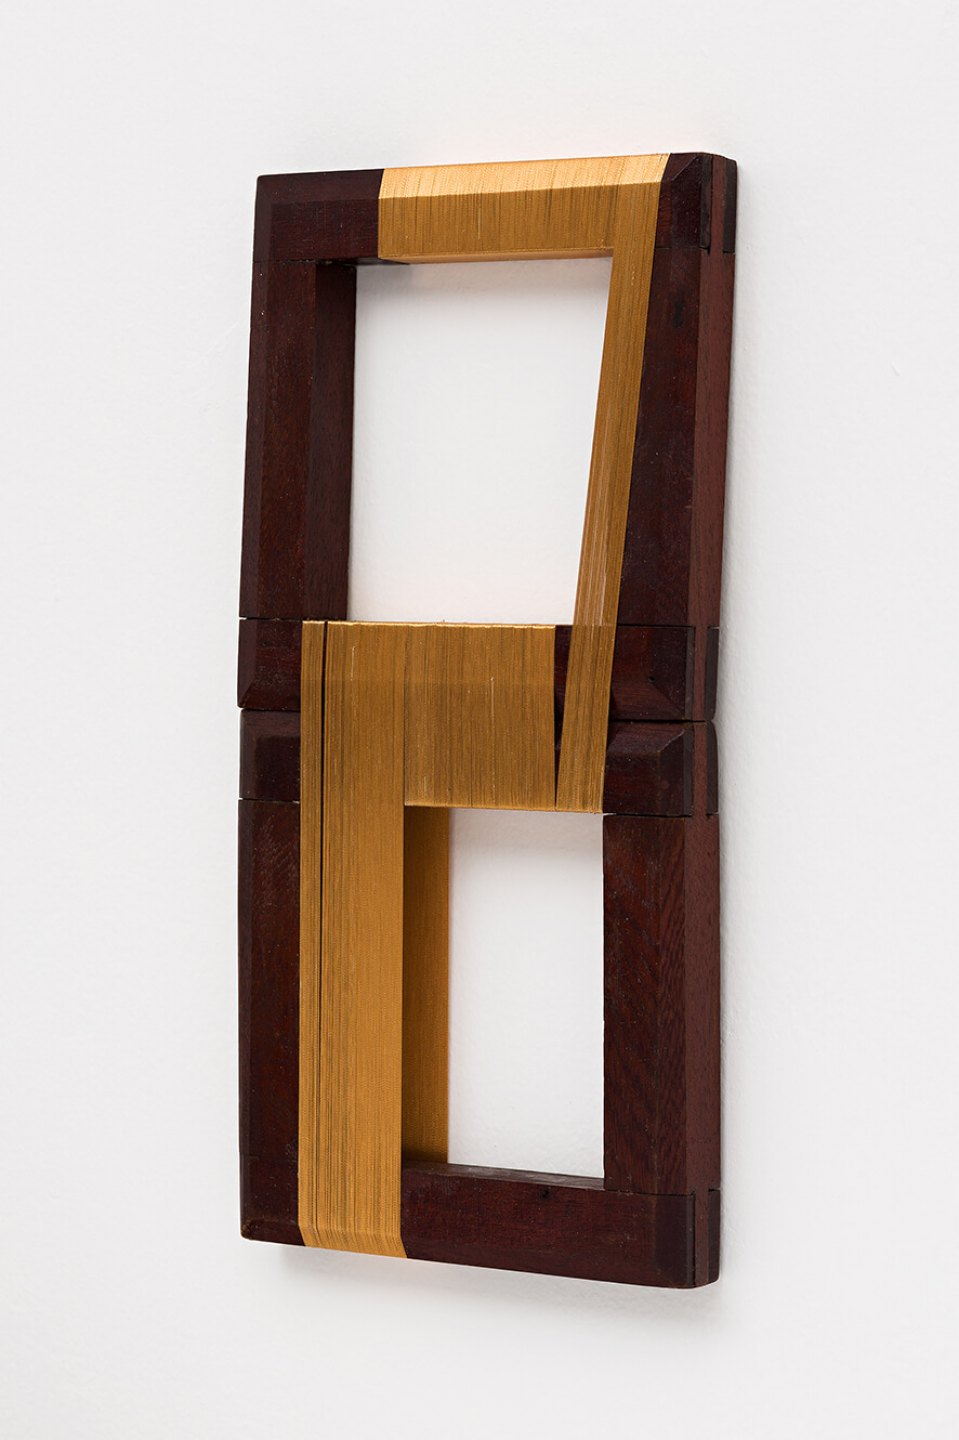 Paloma Bosquê, <em>Rhythm for 2</em>, 2013, lurex threads on wood frame, 36 × 18 × 2,5 cm - Mendes Wood DM